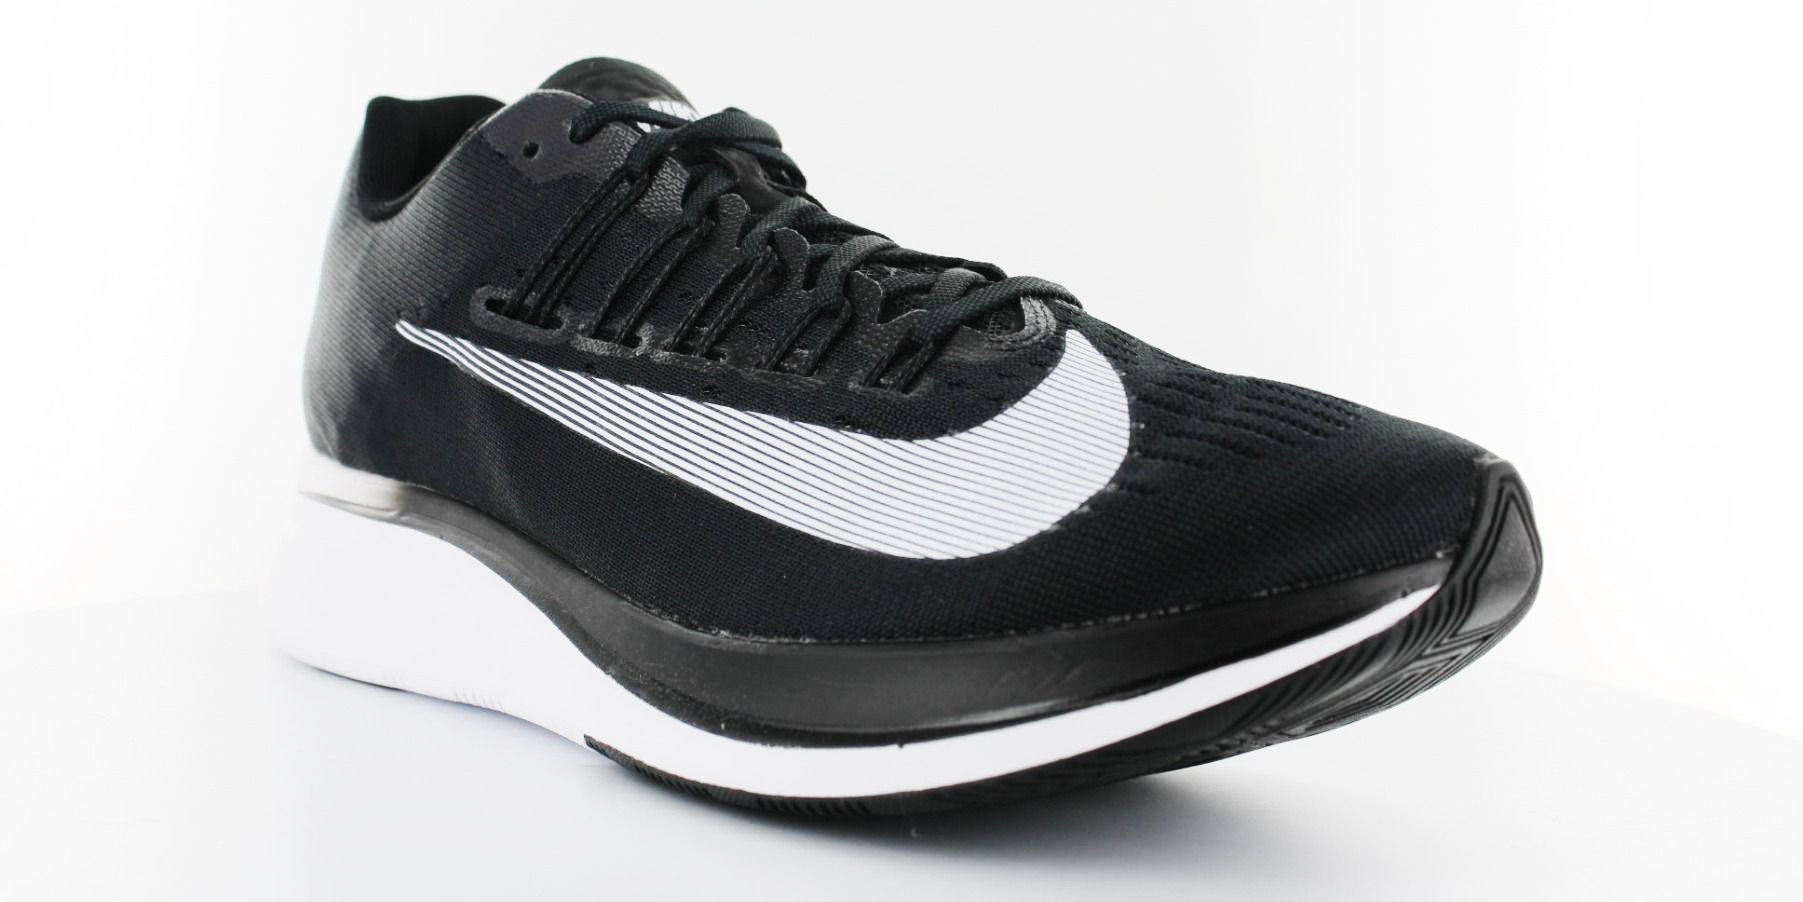 4681c730c6 Nike Zoom Fly Review: Fit, Feel & Function | Kintec Shoe Experts